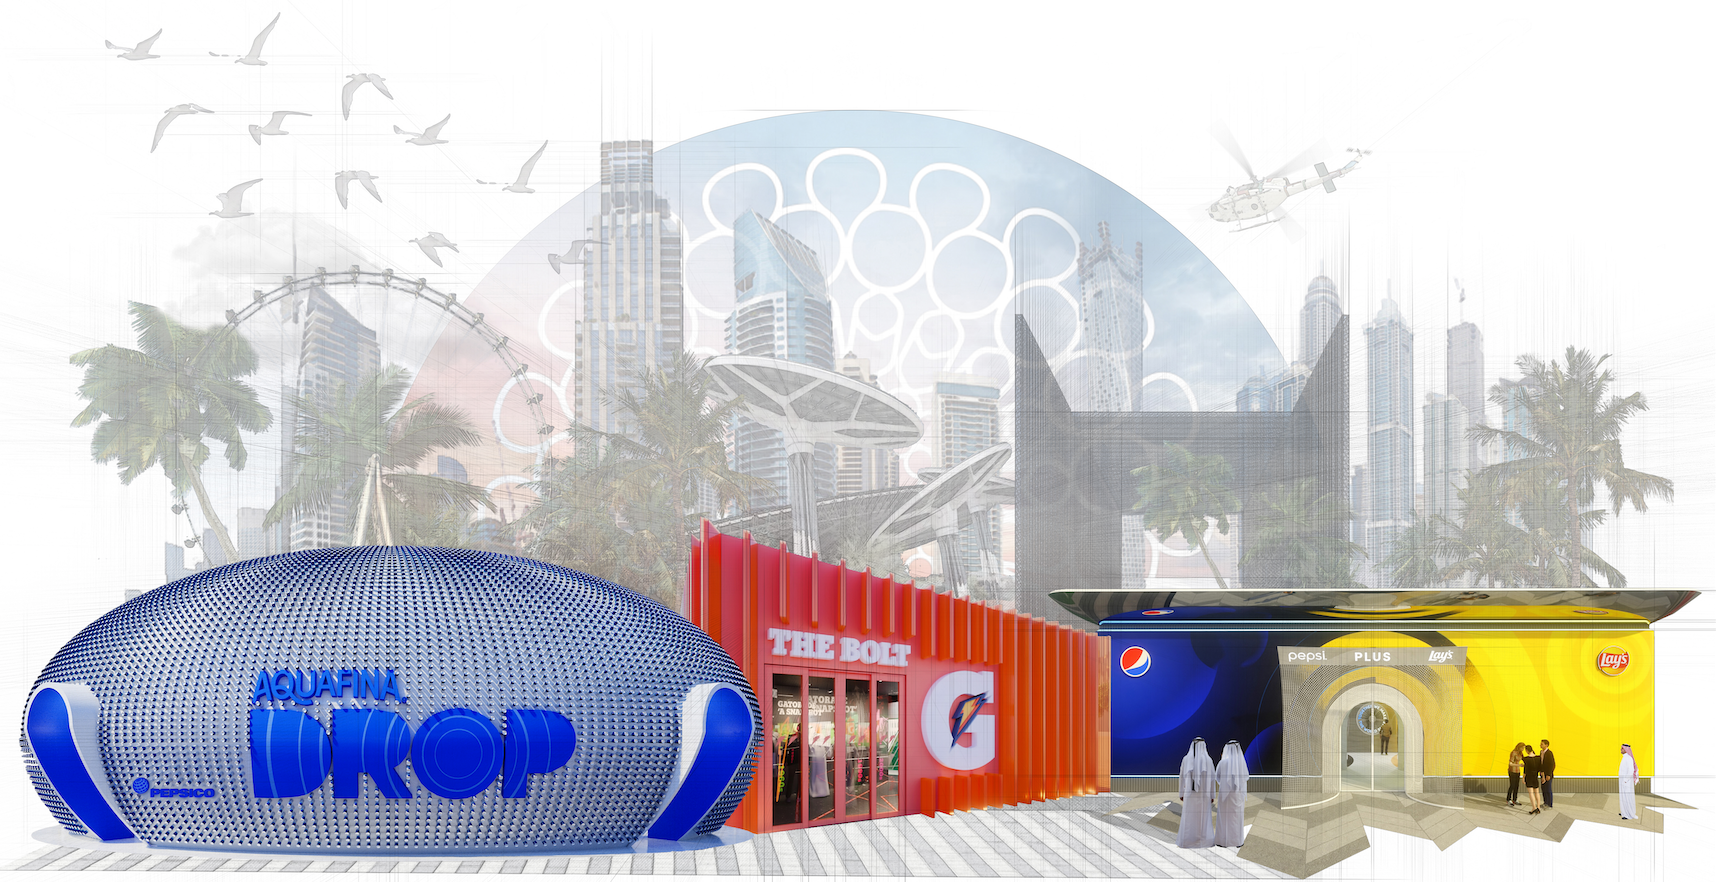 INVNT GROUP® And PepsiCo Innovate Through Partnership At Global Fair